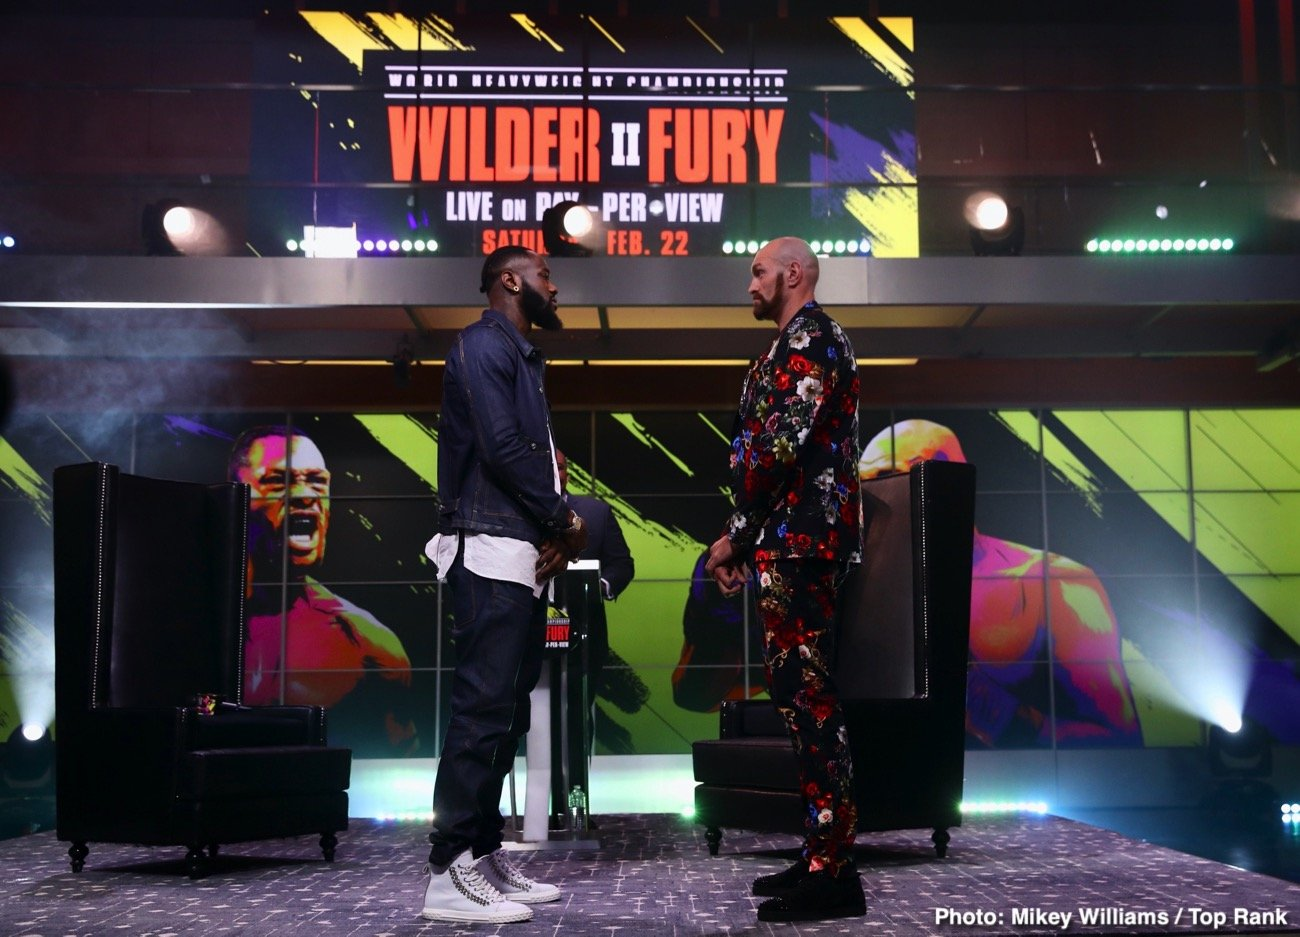 Deontay Wilder, Mike Tyson, Tyson Fury - Former IBF/WBA/WBC heavyweight champion Mike Tyson is really looking forward to next Saturday's rematch between WBC heavyweight champion Deontay 'The Bronze Bomber Wilder and Tyson 'The Gypsy King' Fury on February 22.